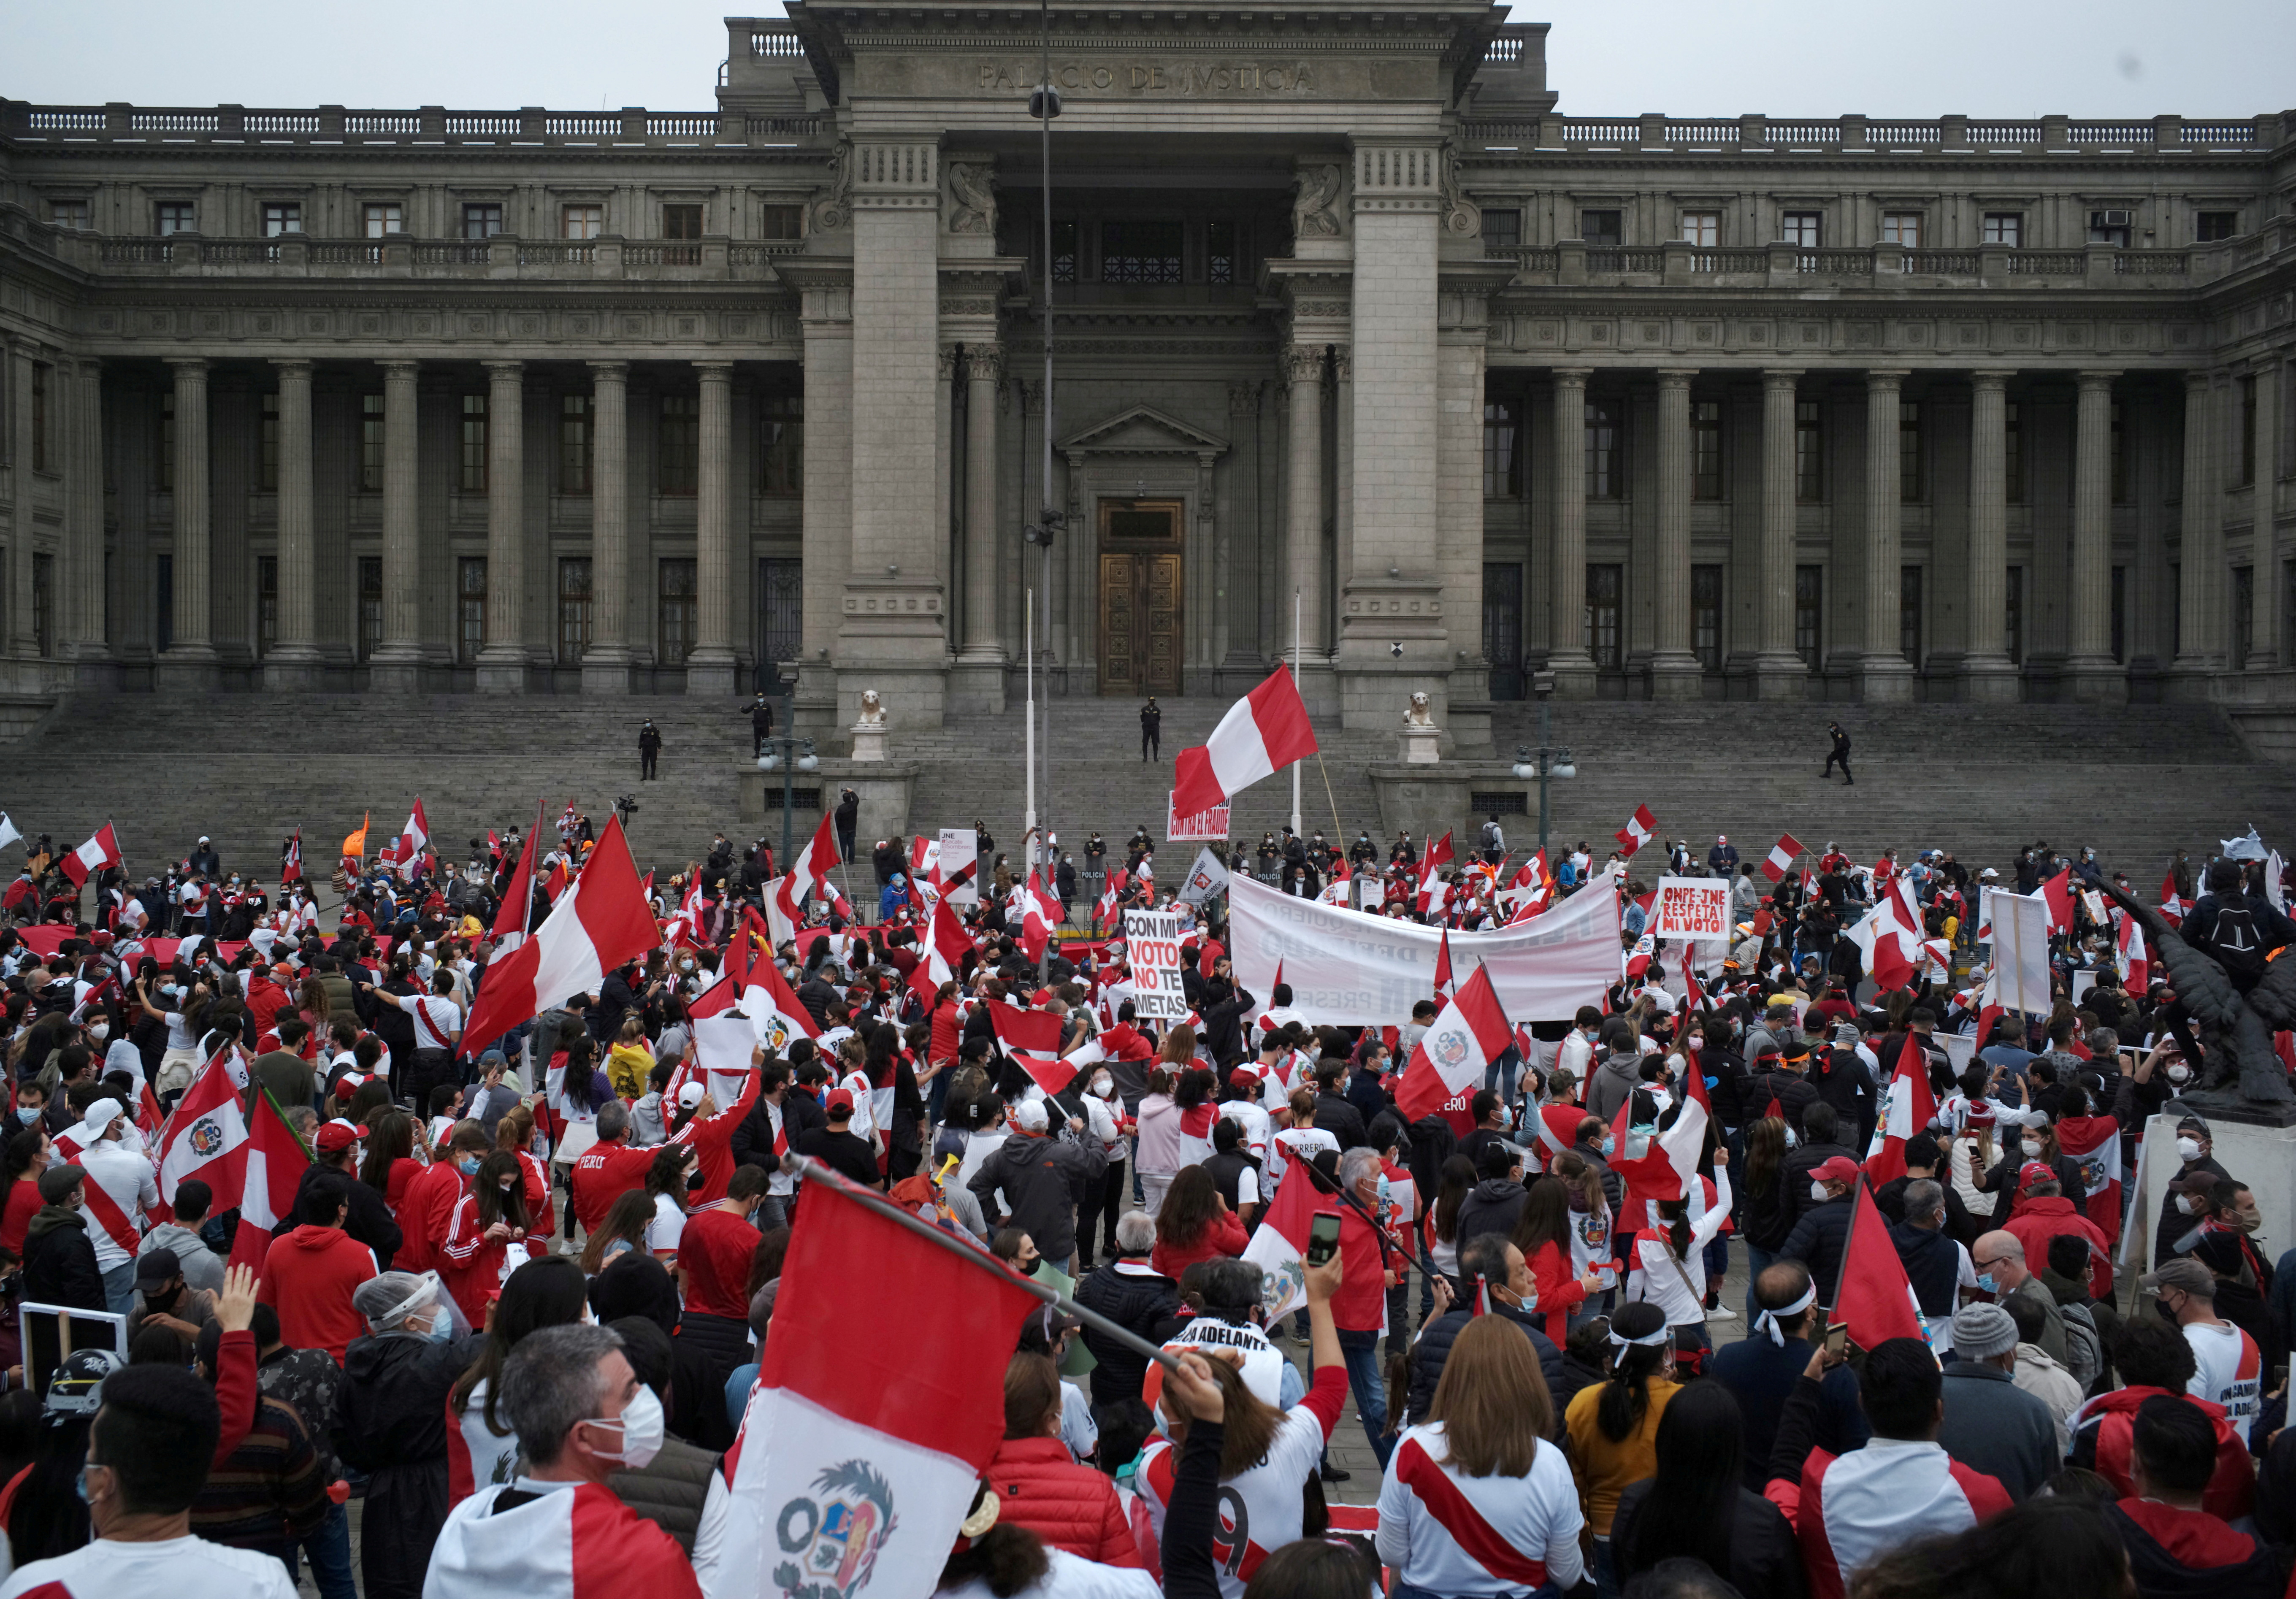 Supporters of Peru's presidential candidate Keiko Fujimori gather outside the Palace of Justice, the seat of Peru's Supreme Court, during a demonstration in Lima, Peru June 12, 2021.  REUTERS/Alessandro Cinque/File Photo